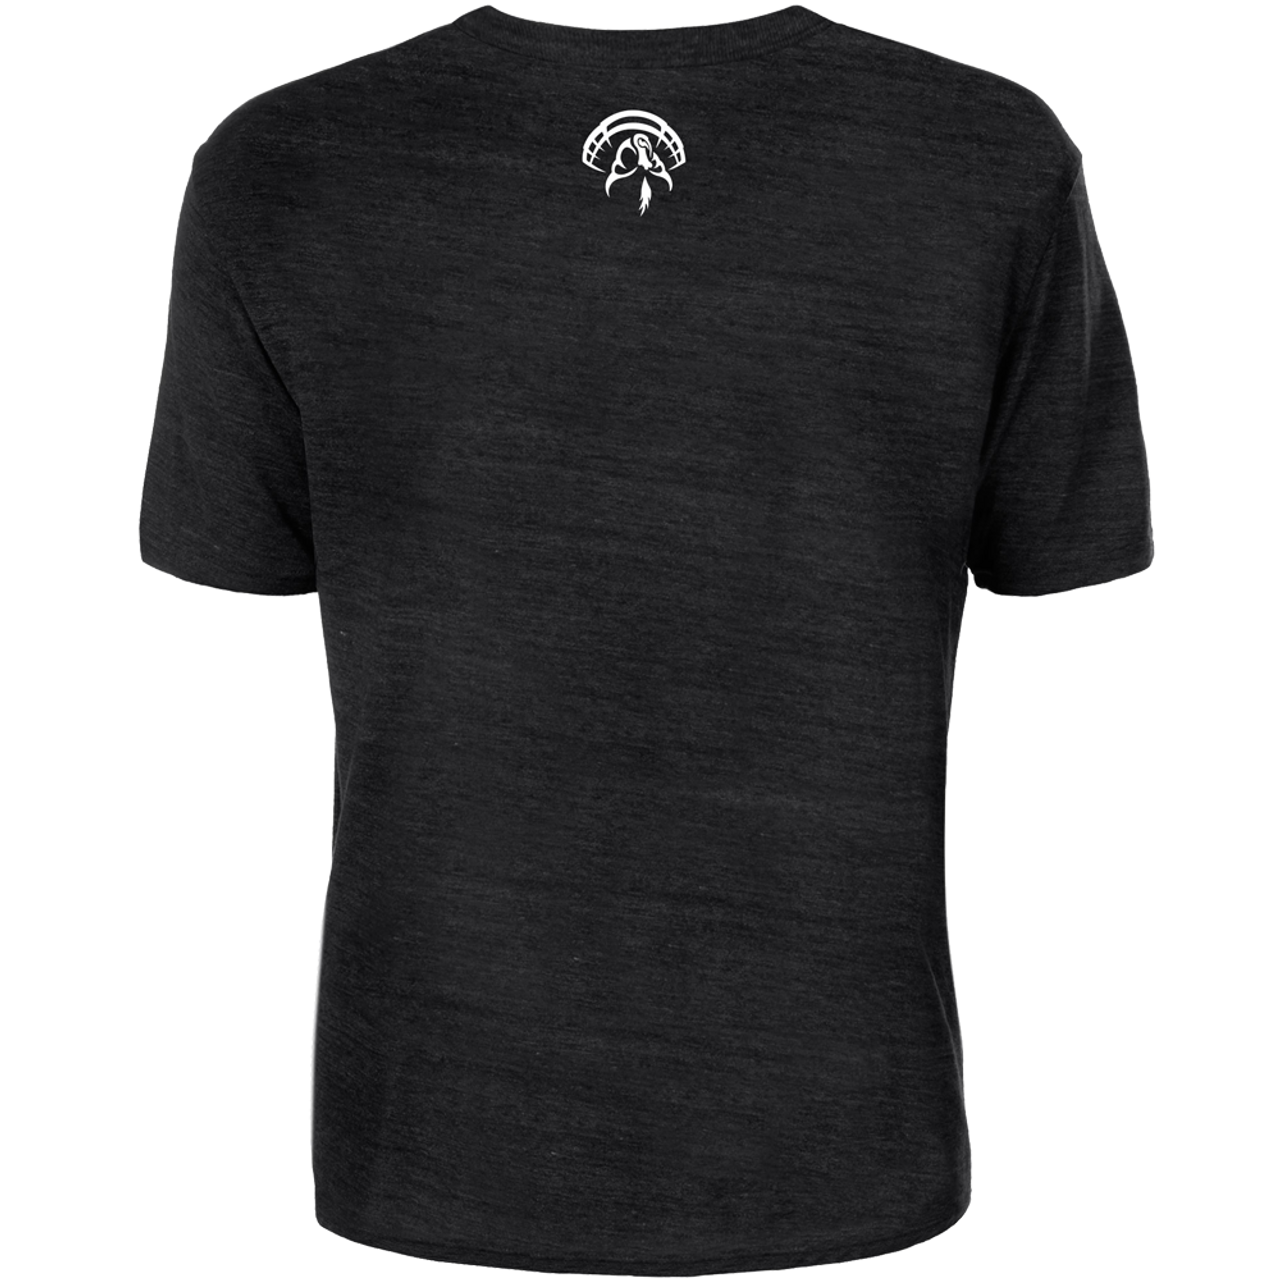 Black Tri-blend cotton tee with the Strut Commander turkey logo printed on the back neck area.